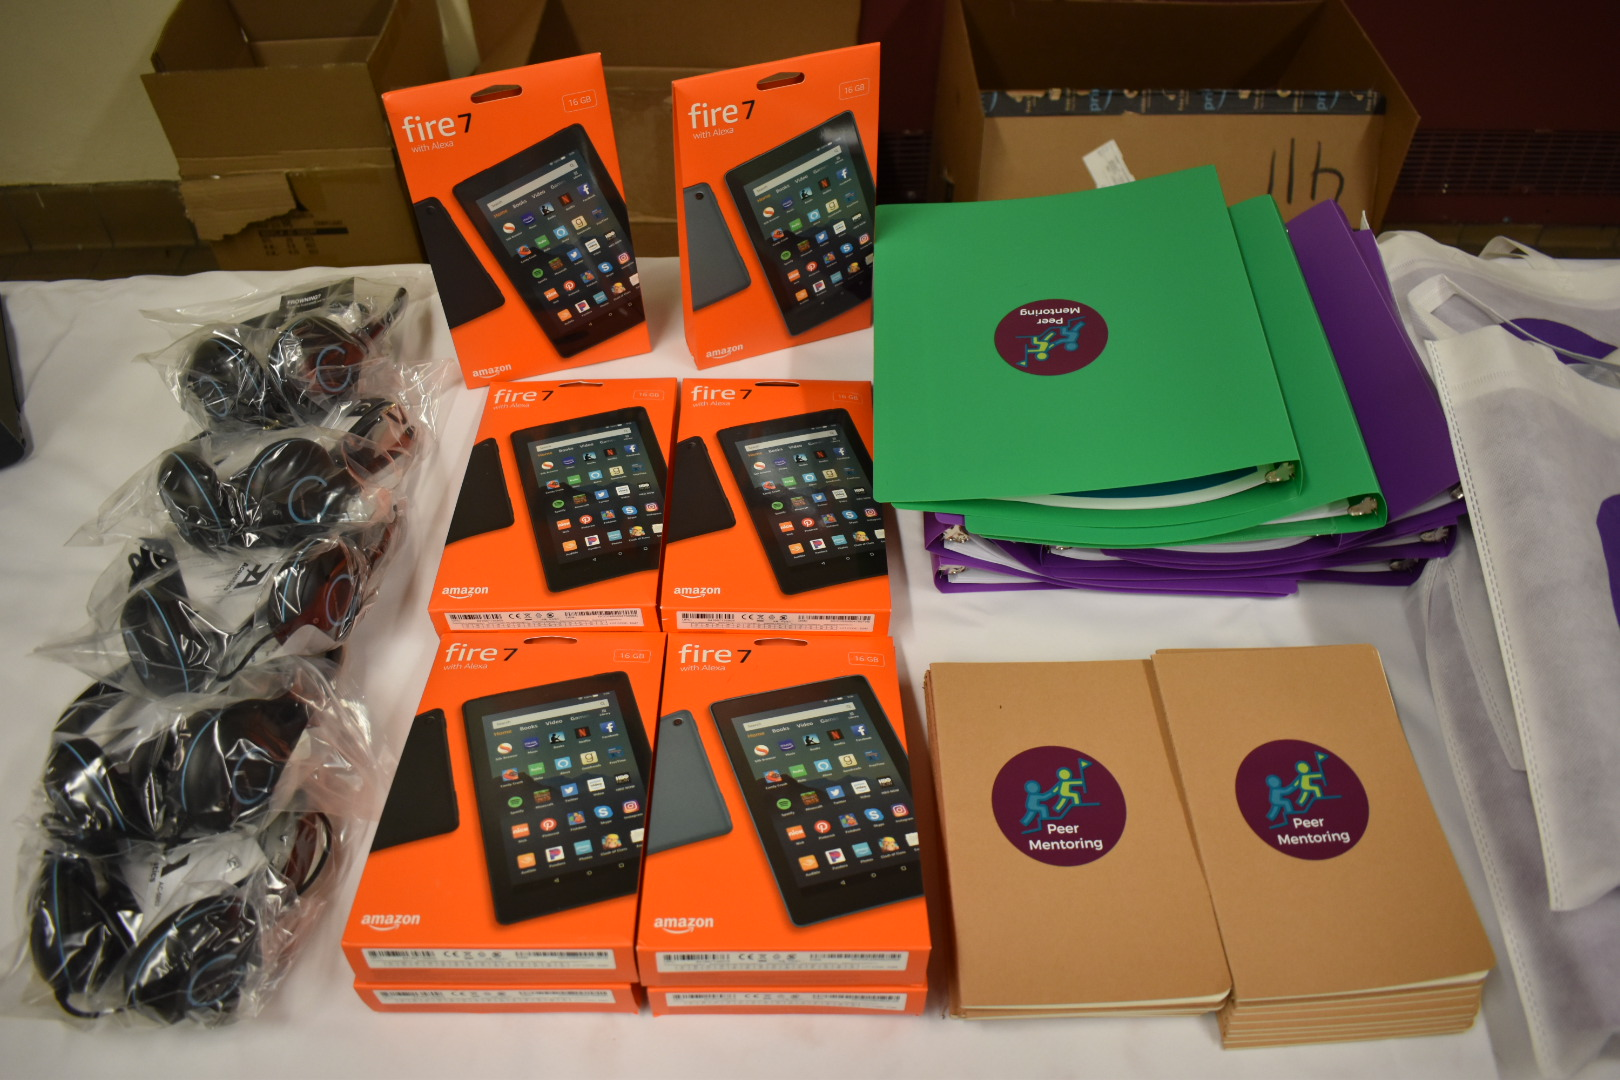 Distributing technology to migrant youth in NYC